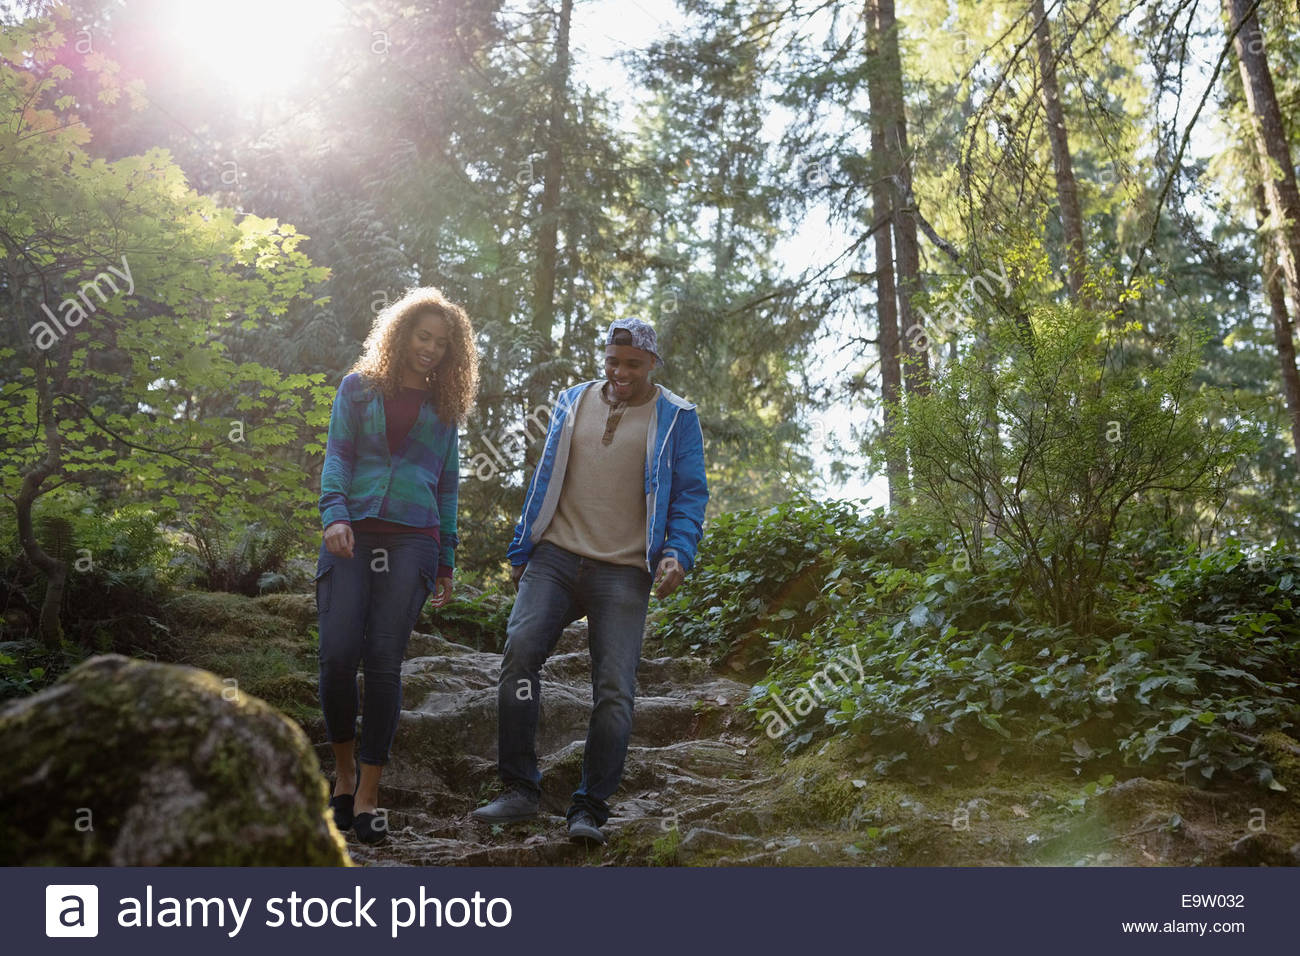 Young couple hiking down path in woods - Stock Image